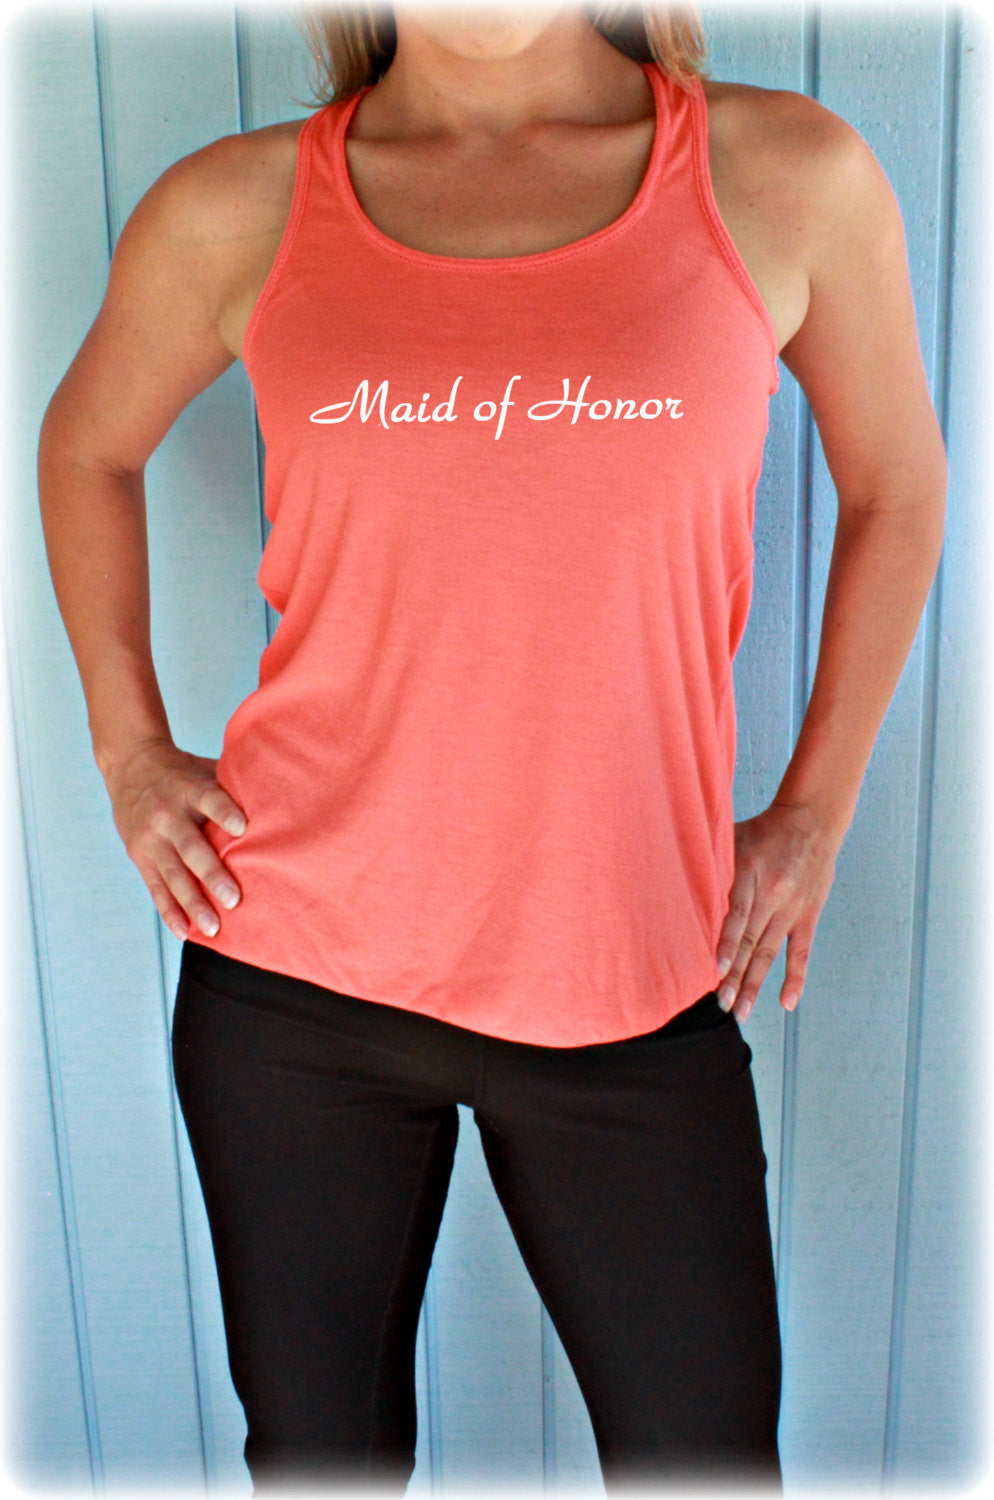 6,7,8 or 9 Bridesmaid Tank Tops. Flowy Bridal Party Shirts. Bride. Maid of Honor. Wedding Bachelorette Party Gift. Bride Shirt. Bride Gift.